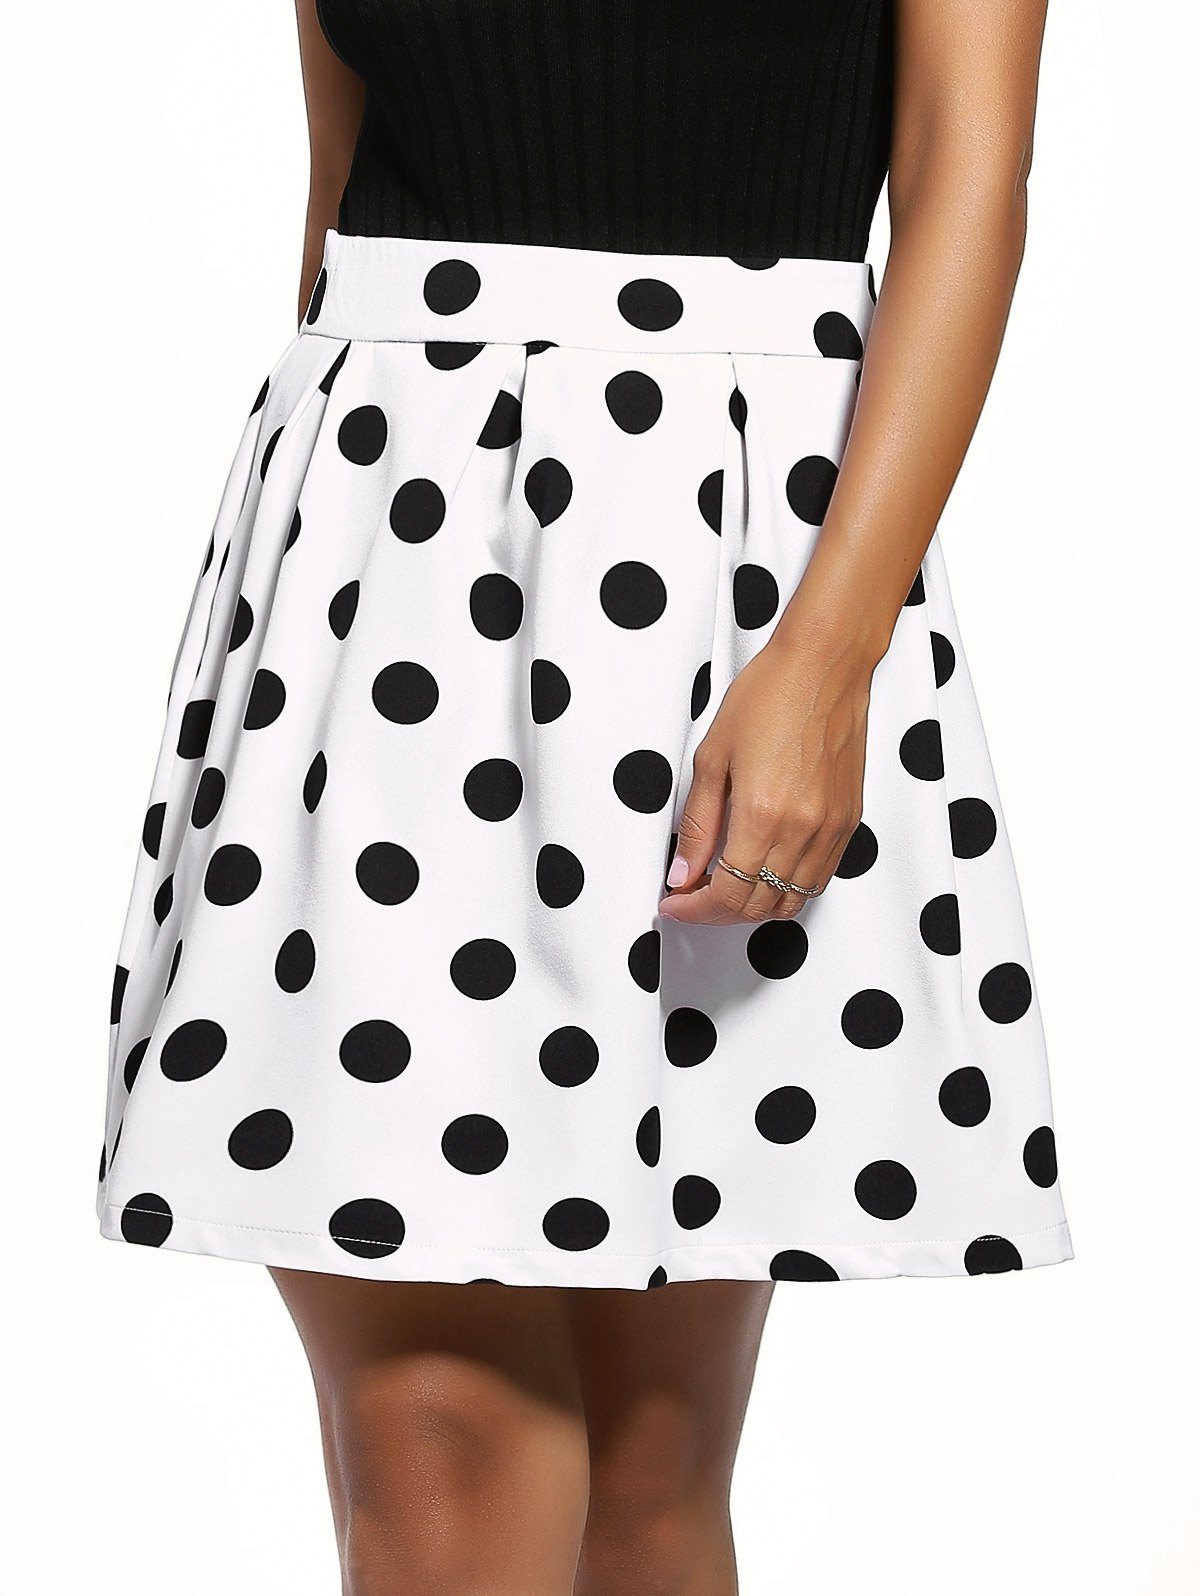 Vintage Black Polka Dot Print Sweet Skirt For Women - WHITE/BLACK L